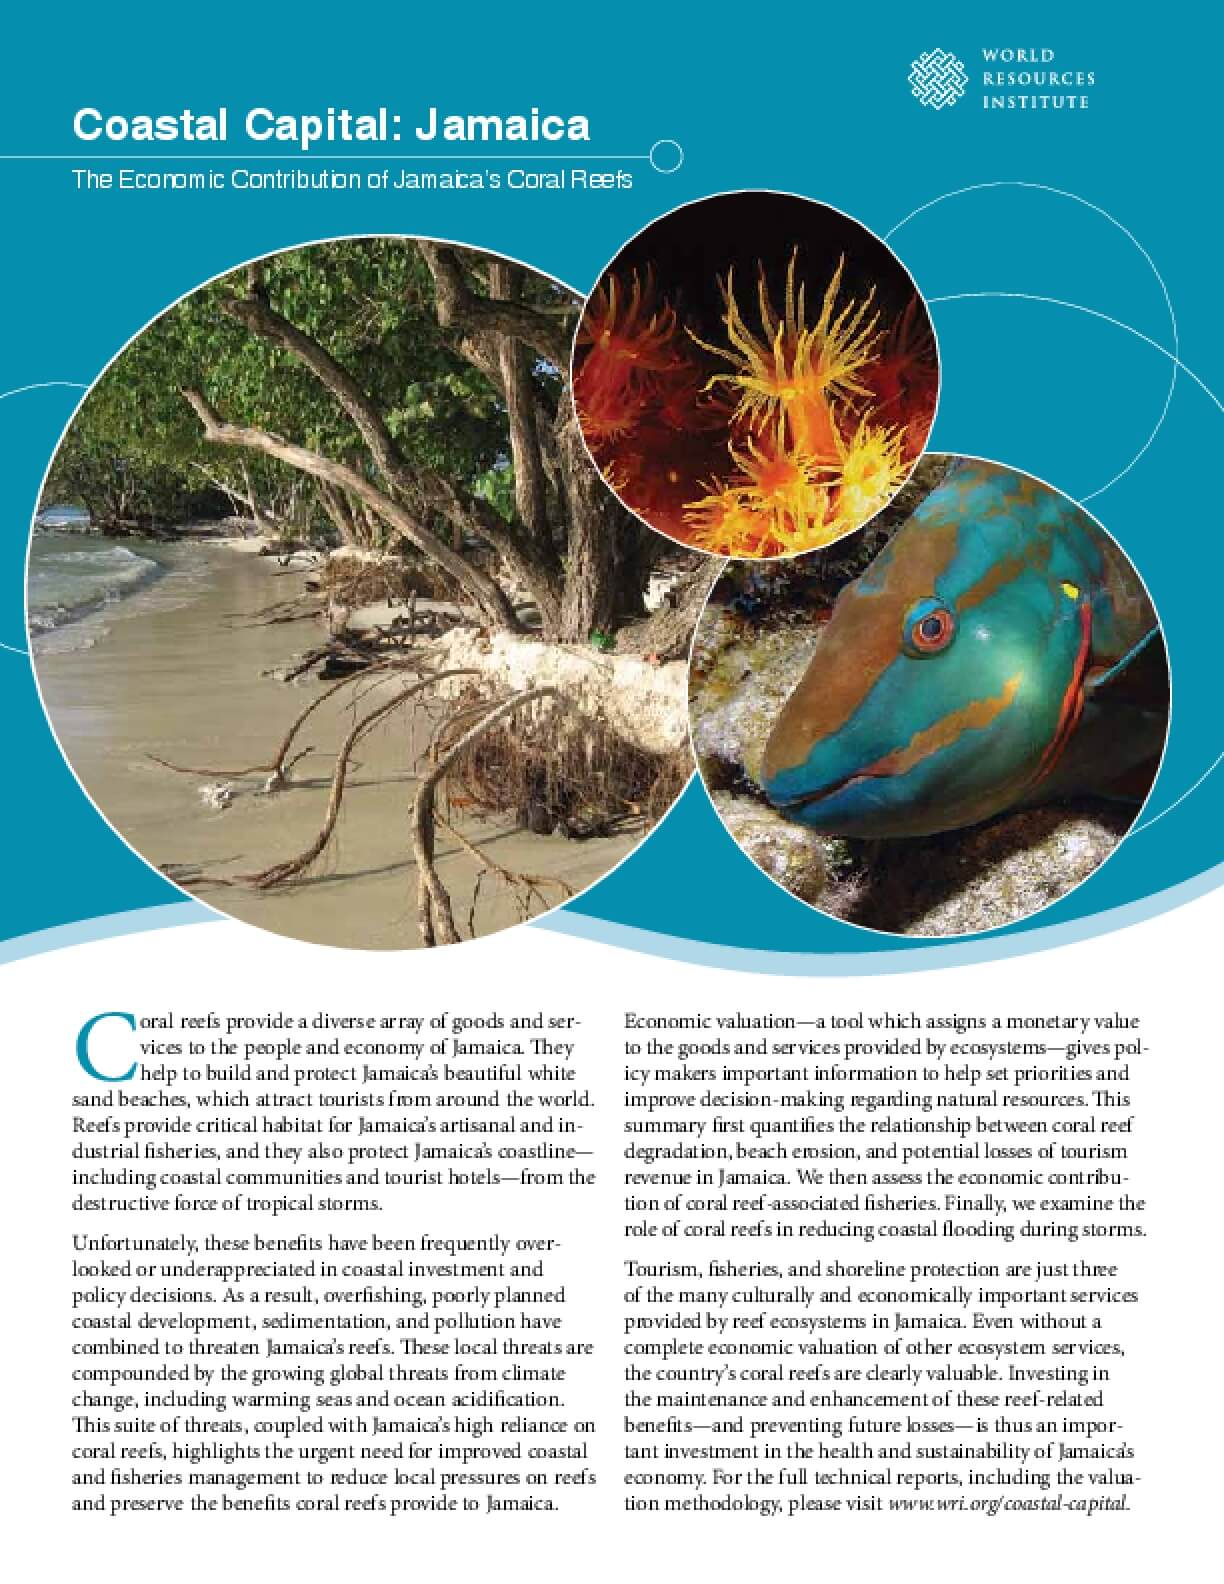 Coastal Capital: Jamaica. The Economic Contribution of Jamaica's Coral Reefs